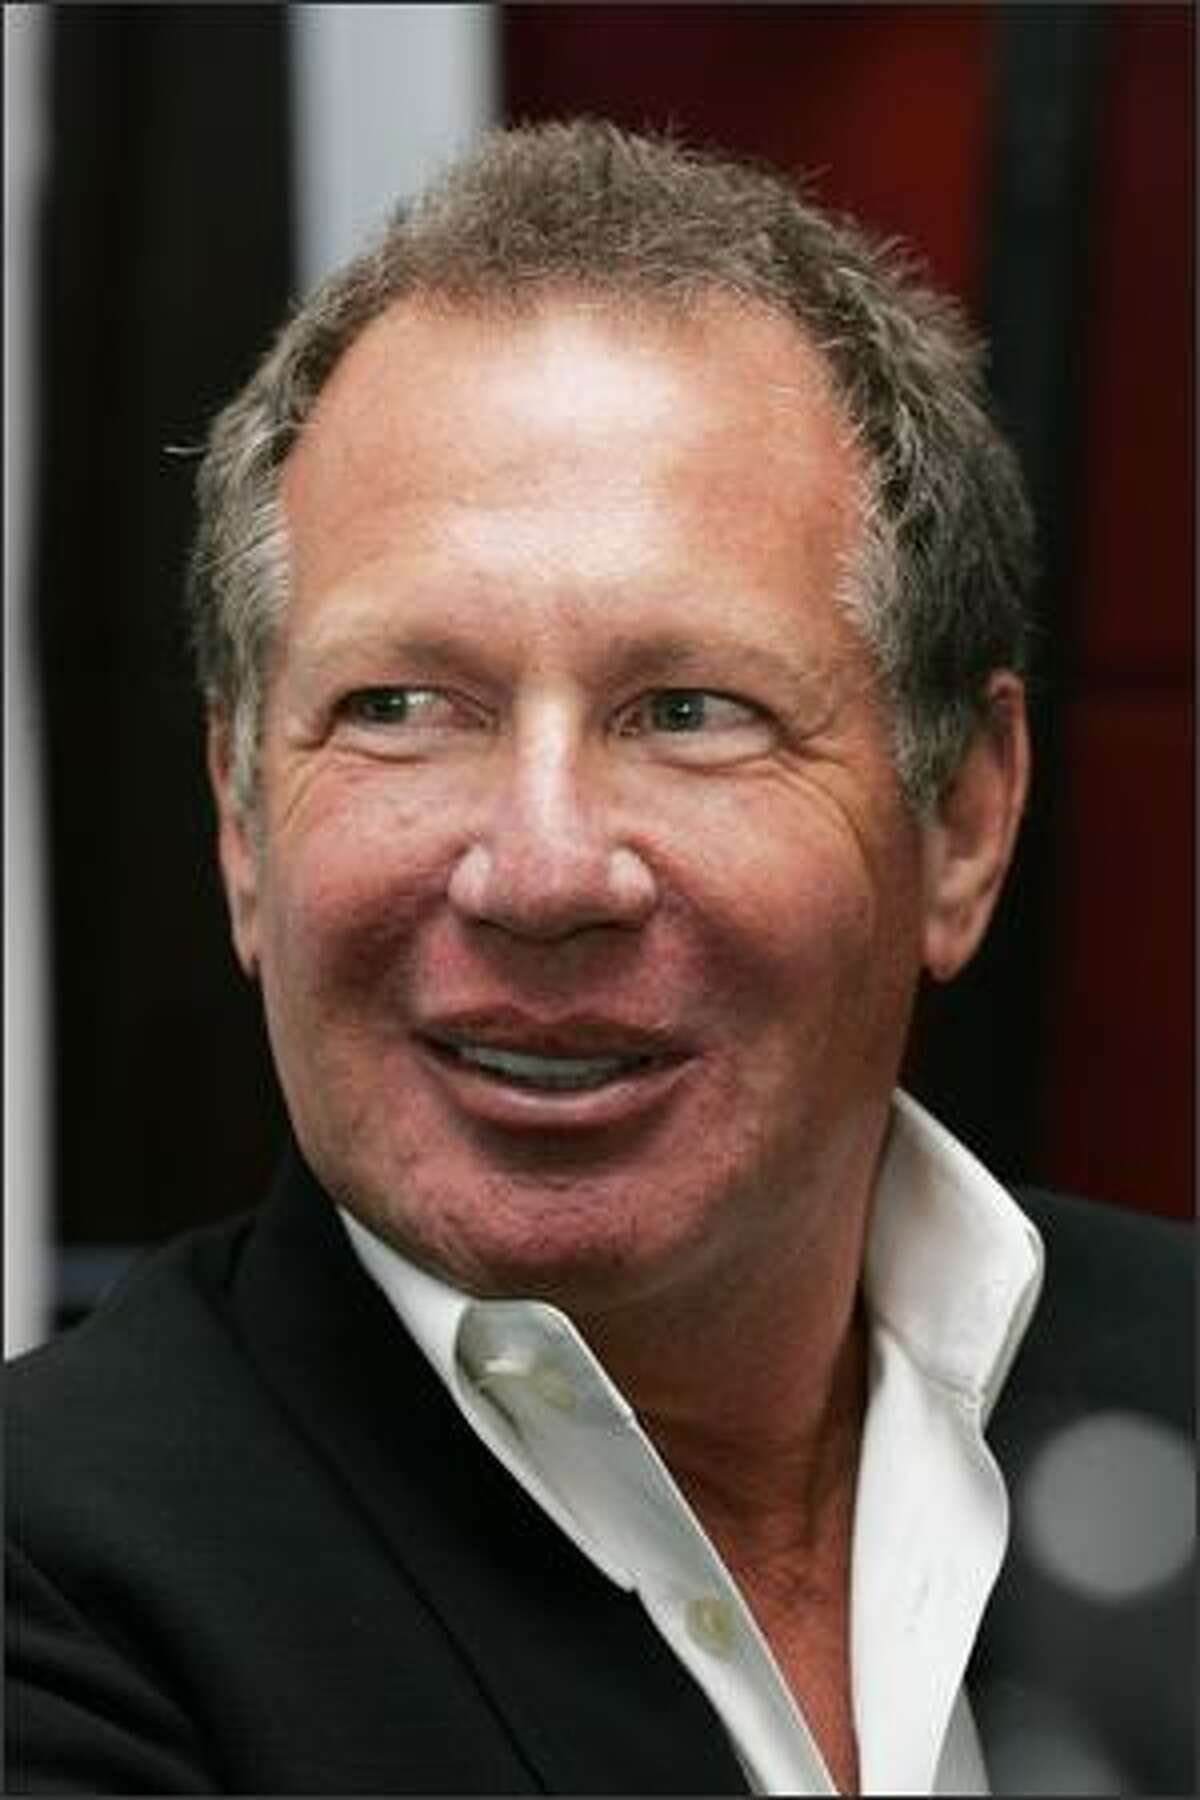 Comedian Garry Shandling arrives for